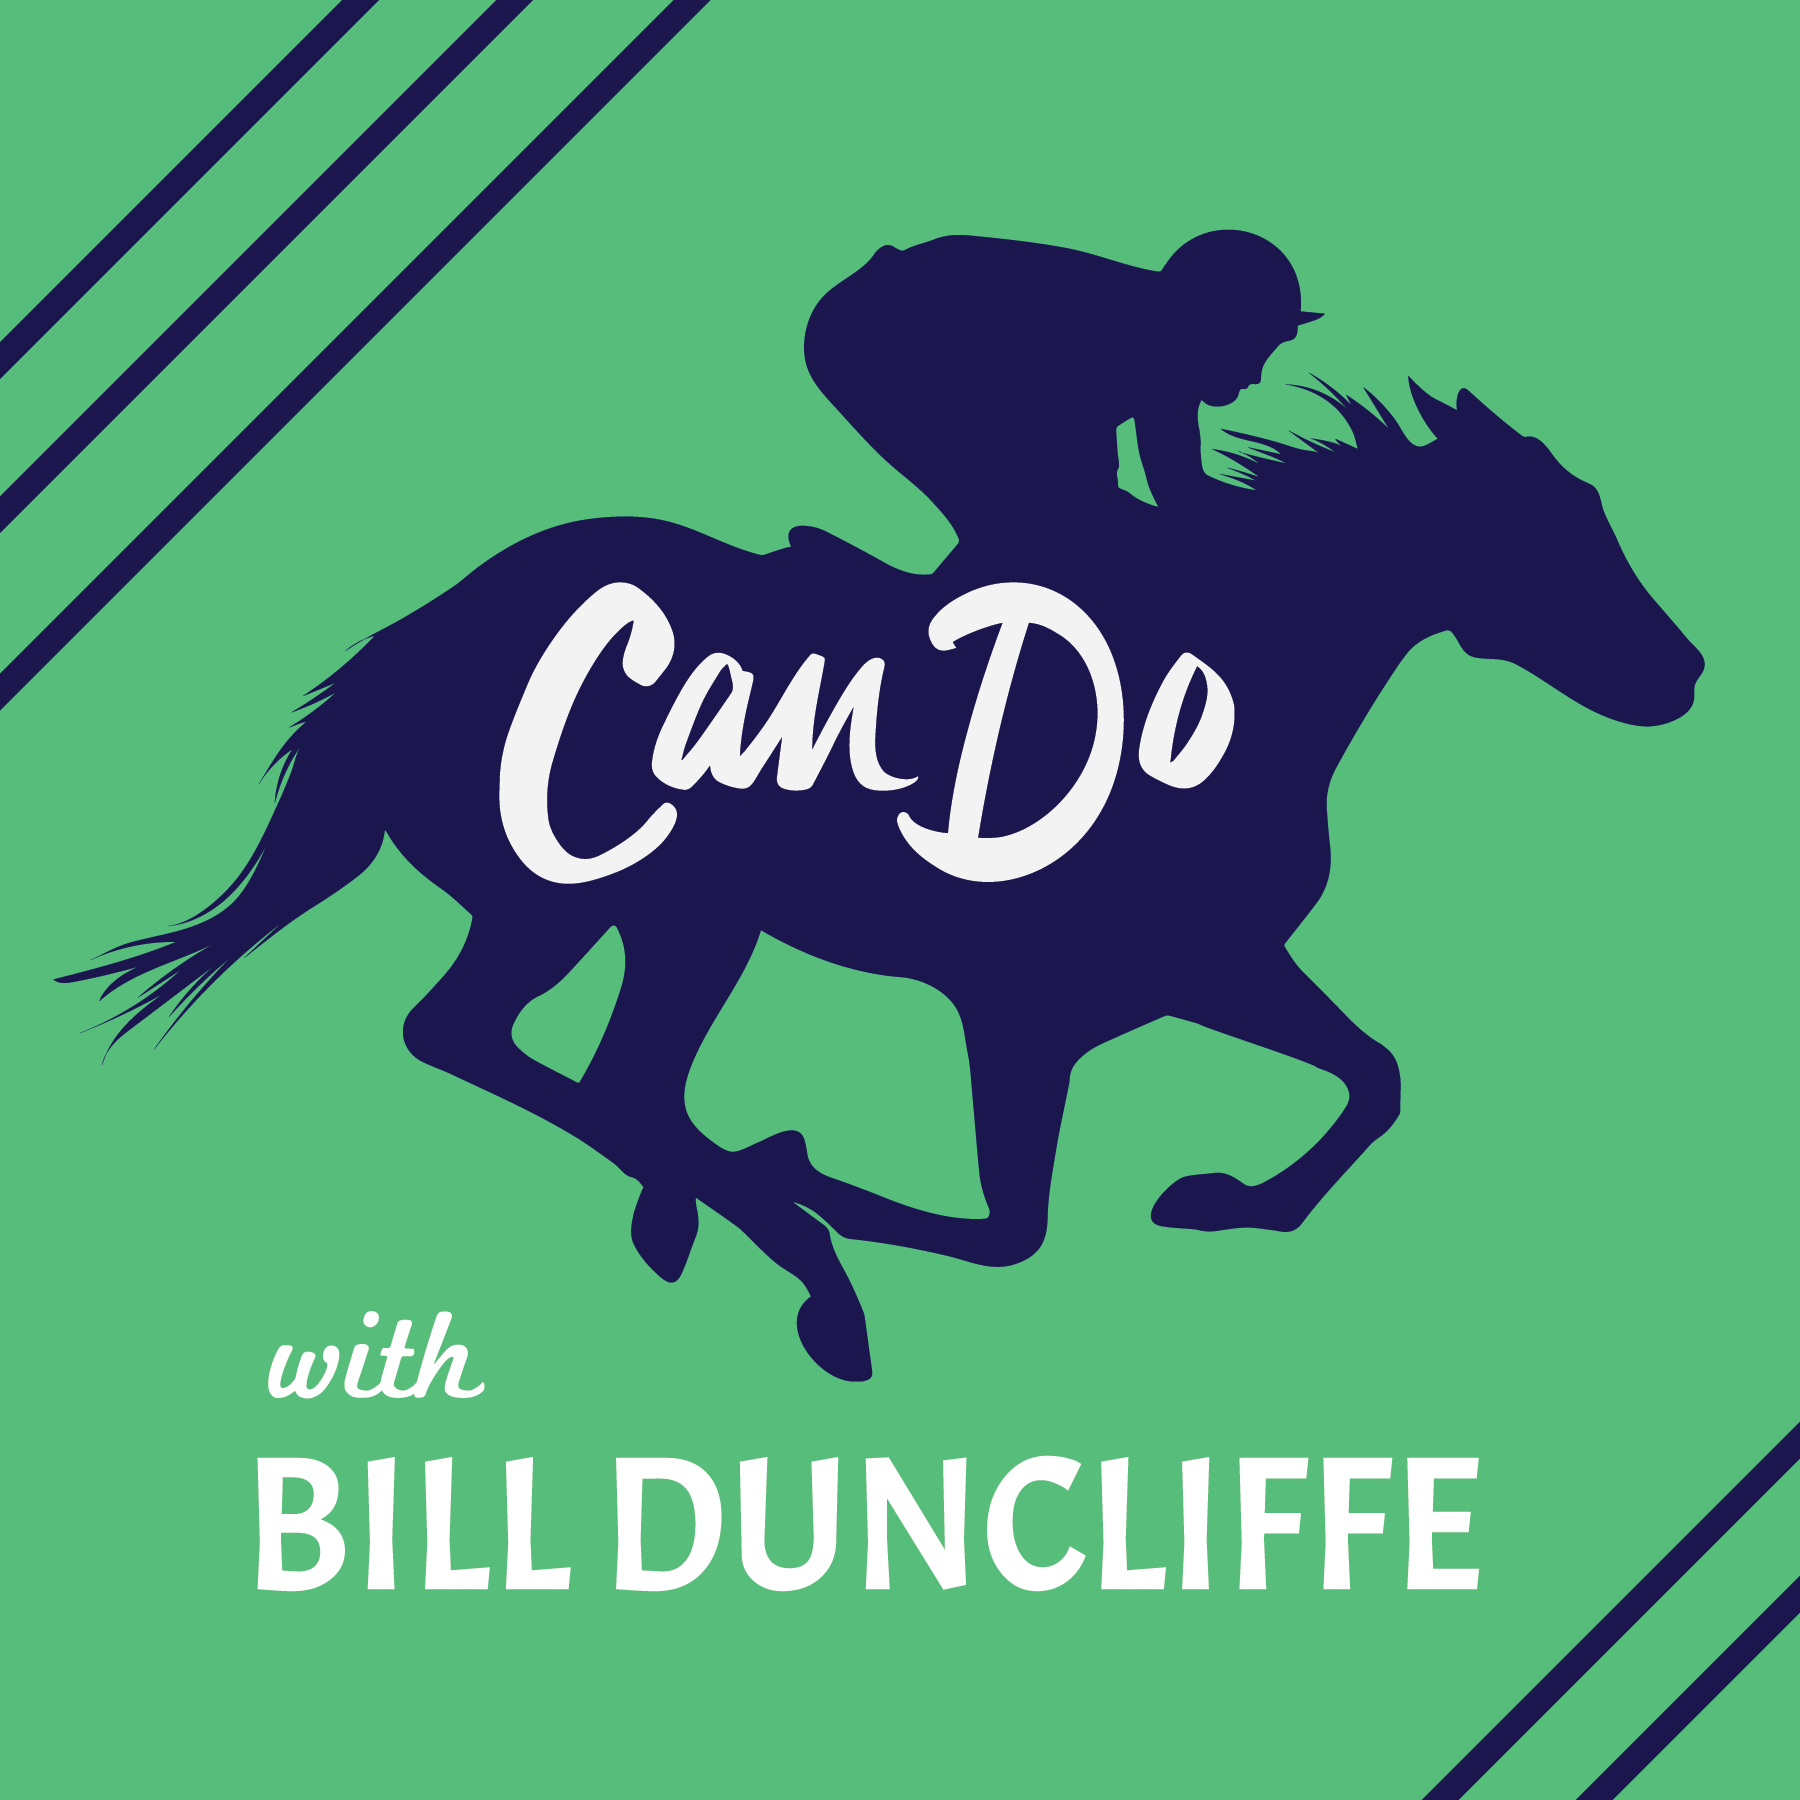 Artwork for podcast Can Do with Bill Duncliffe